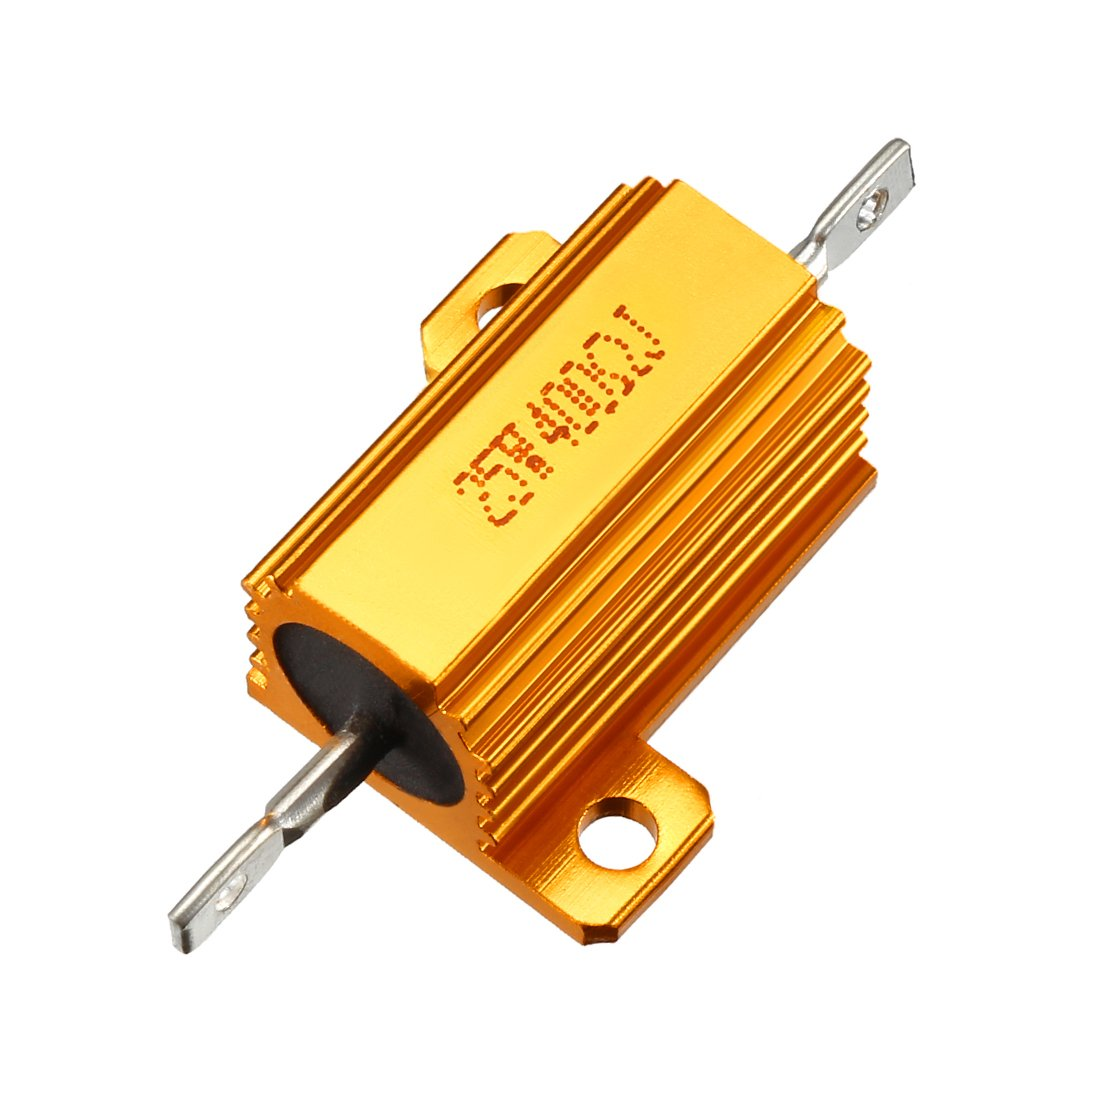 sourcingmap 25 Watt 50 Ohm 5/% Aluminum Housing Resistor Screw Tap Chassis Mounted Aluminum Case Wirewound Resistor Load Resistors Gold Tone